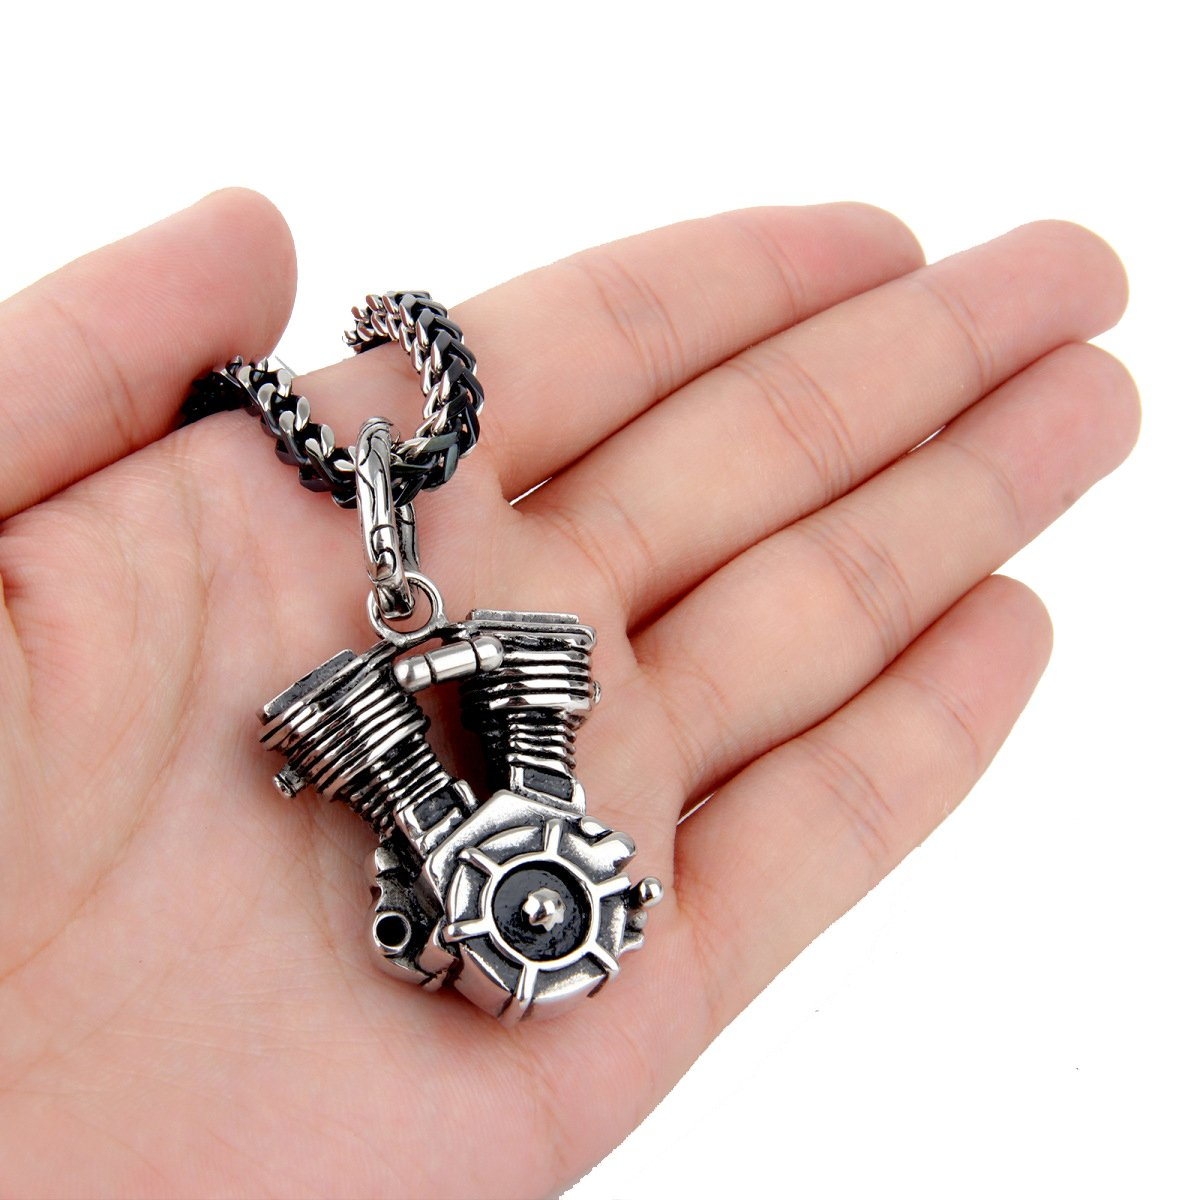 MENDEL Mens Motorcycle Engine Necklace Biker Pendant Heavy Stainless Steel Punk